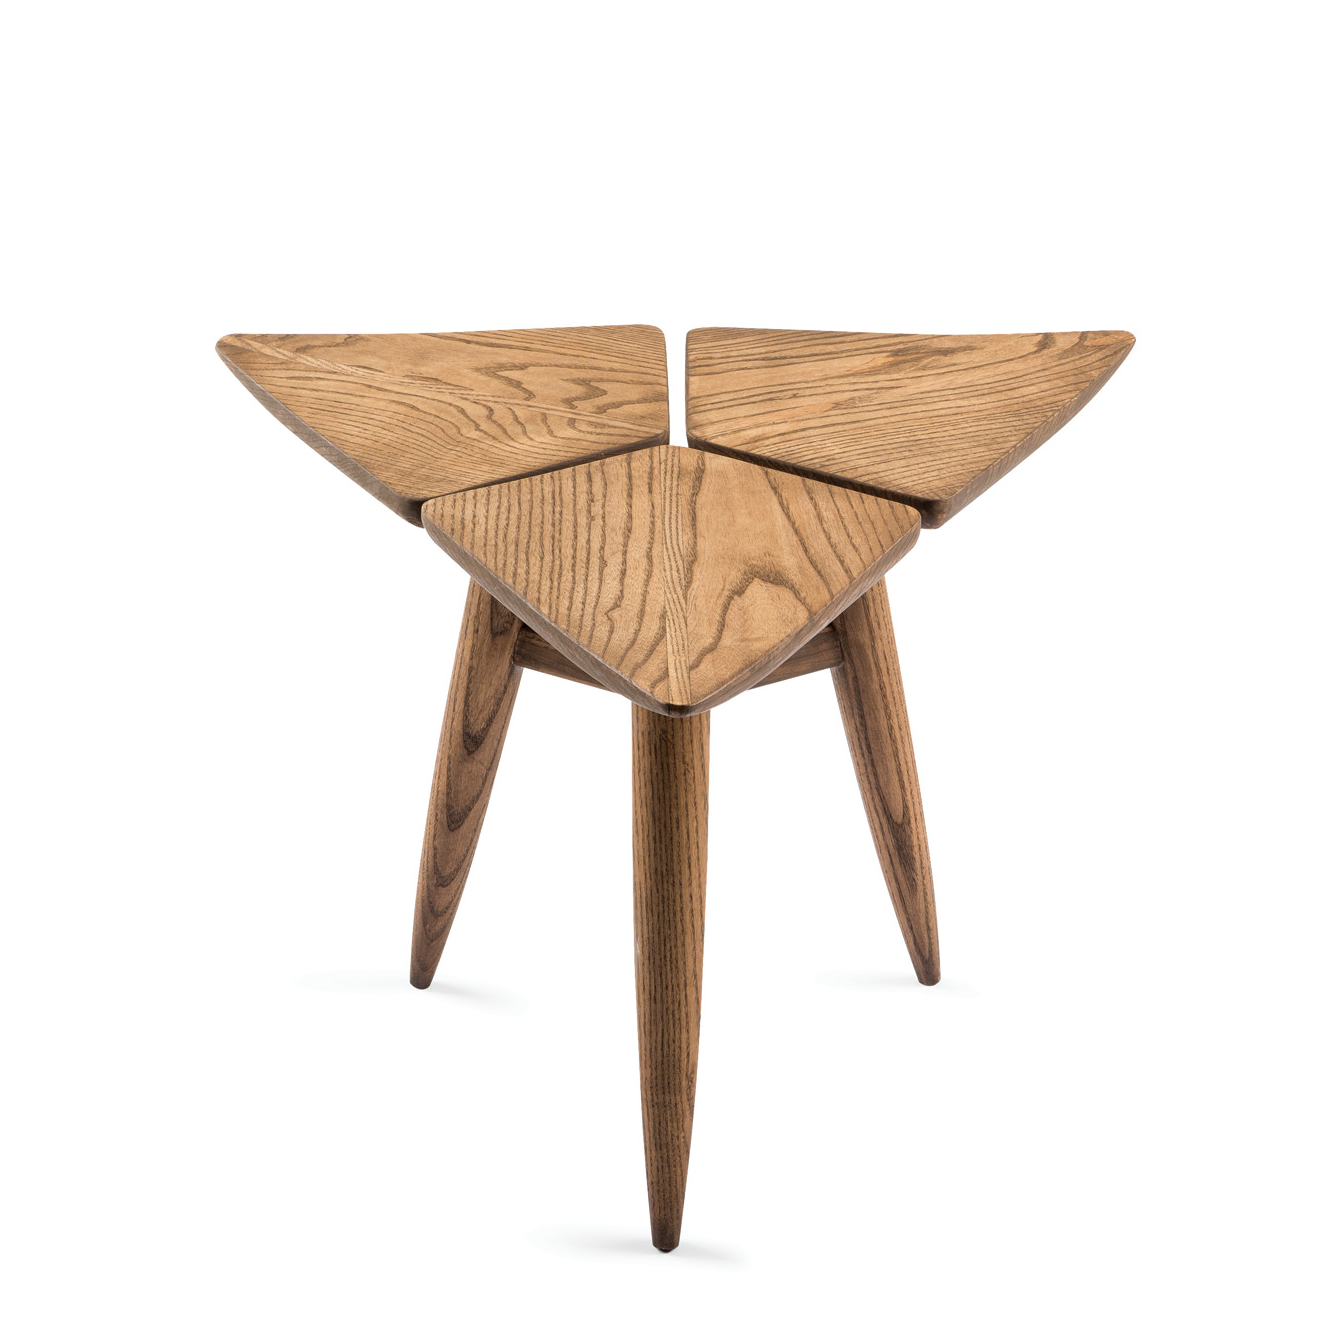 MOOVE TABLE by Vogel Design at SARZA. furniture, Moove Table, tables, Vogel, vogel design, vogel furniture